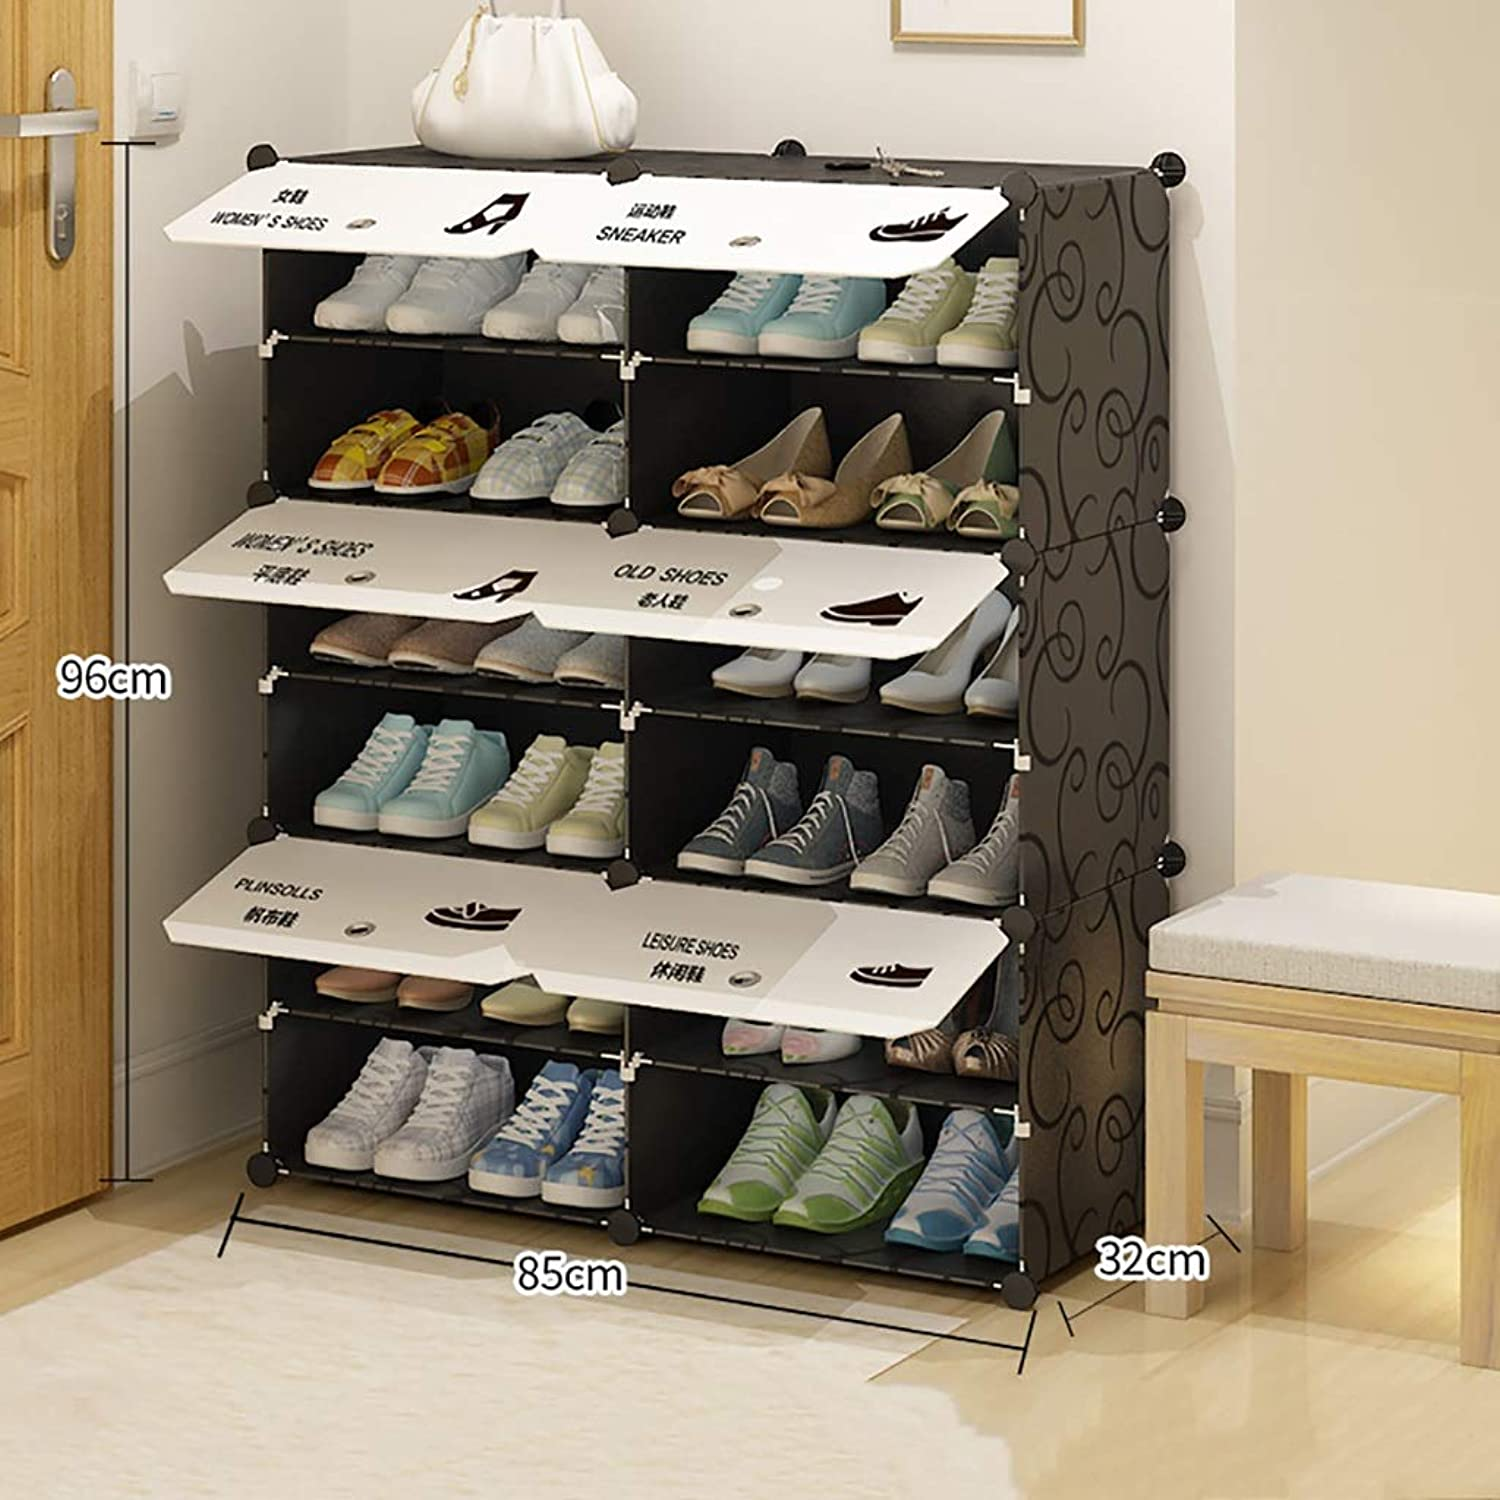 6 8 10 Layer shoesbox shoes Rack Shelf Storage Rack Small shoes Shelf Multifunction Dorm Room Household Doorway Space Saving (Size   85  32  96cm(1))